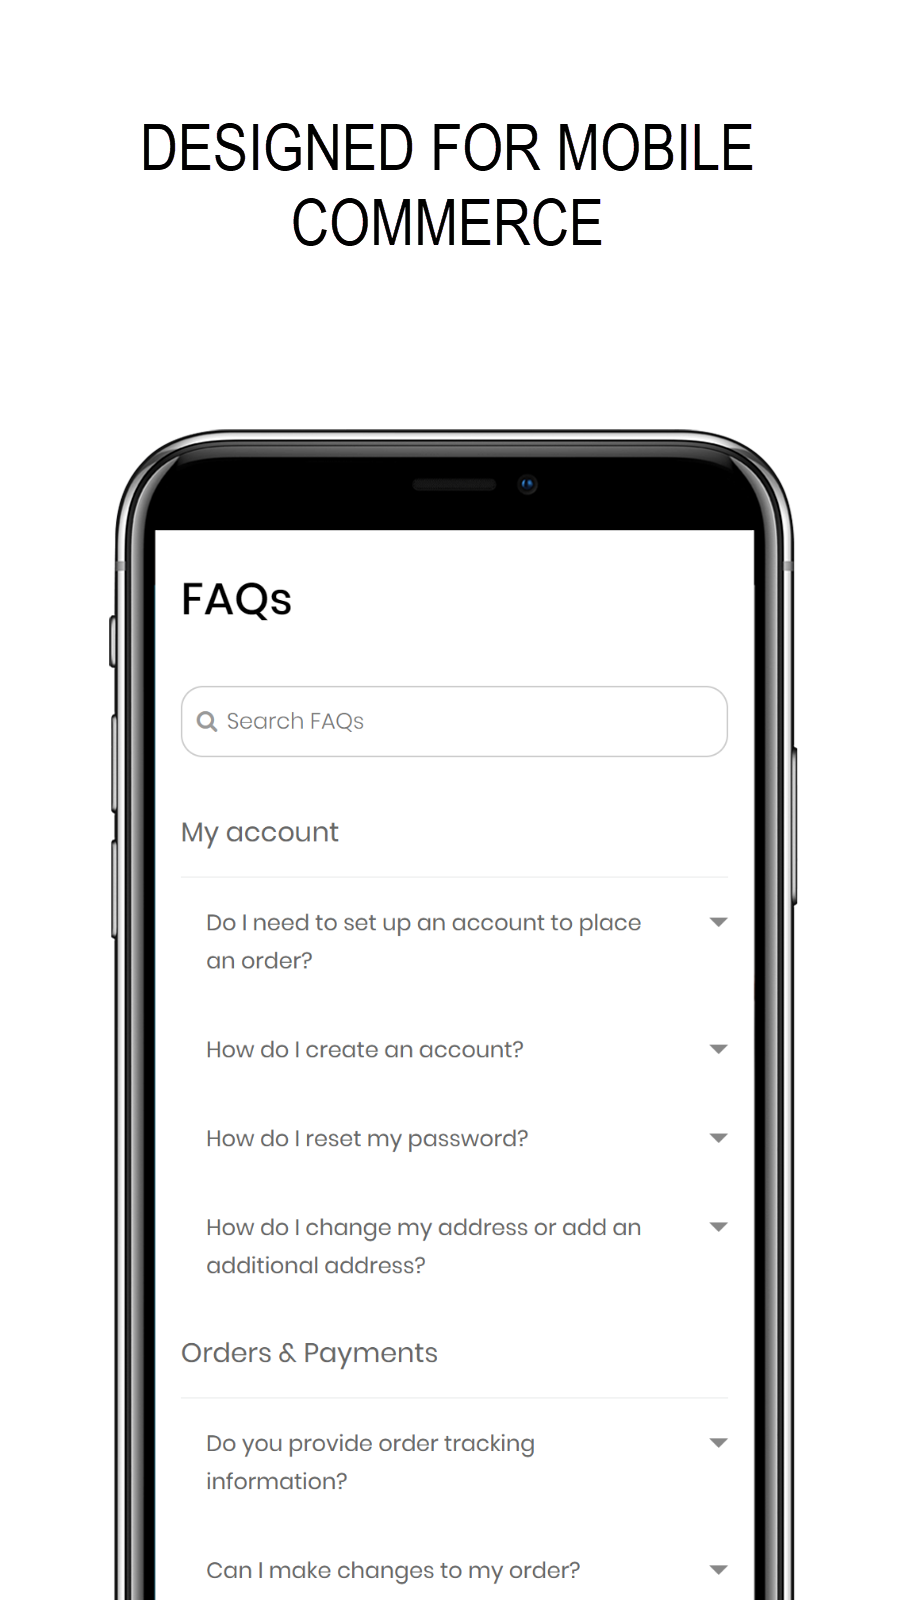 FAQ page designed for mobile commerce